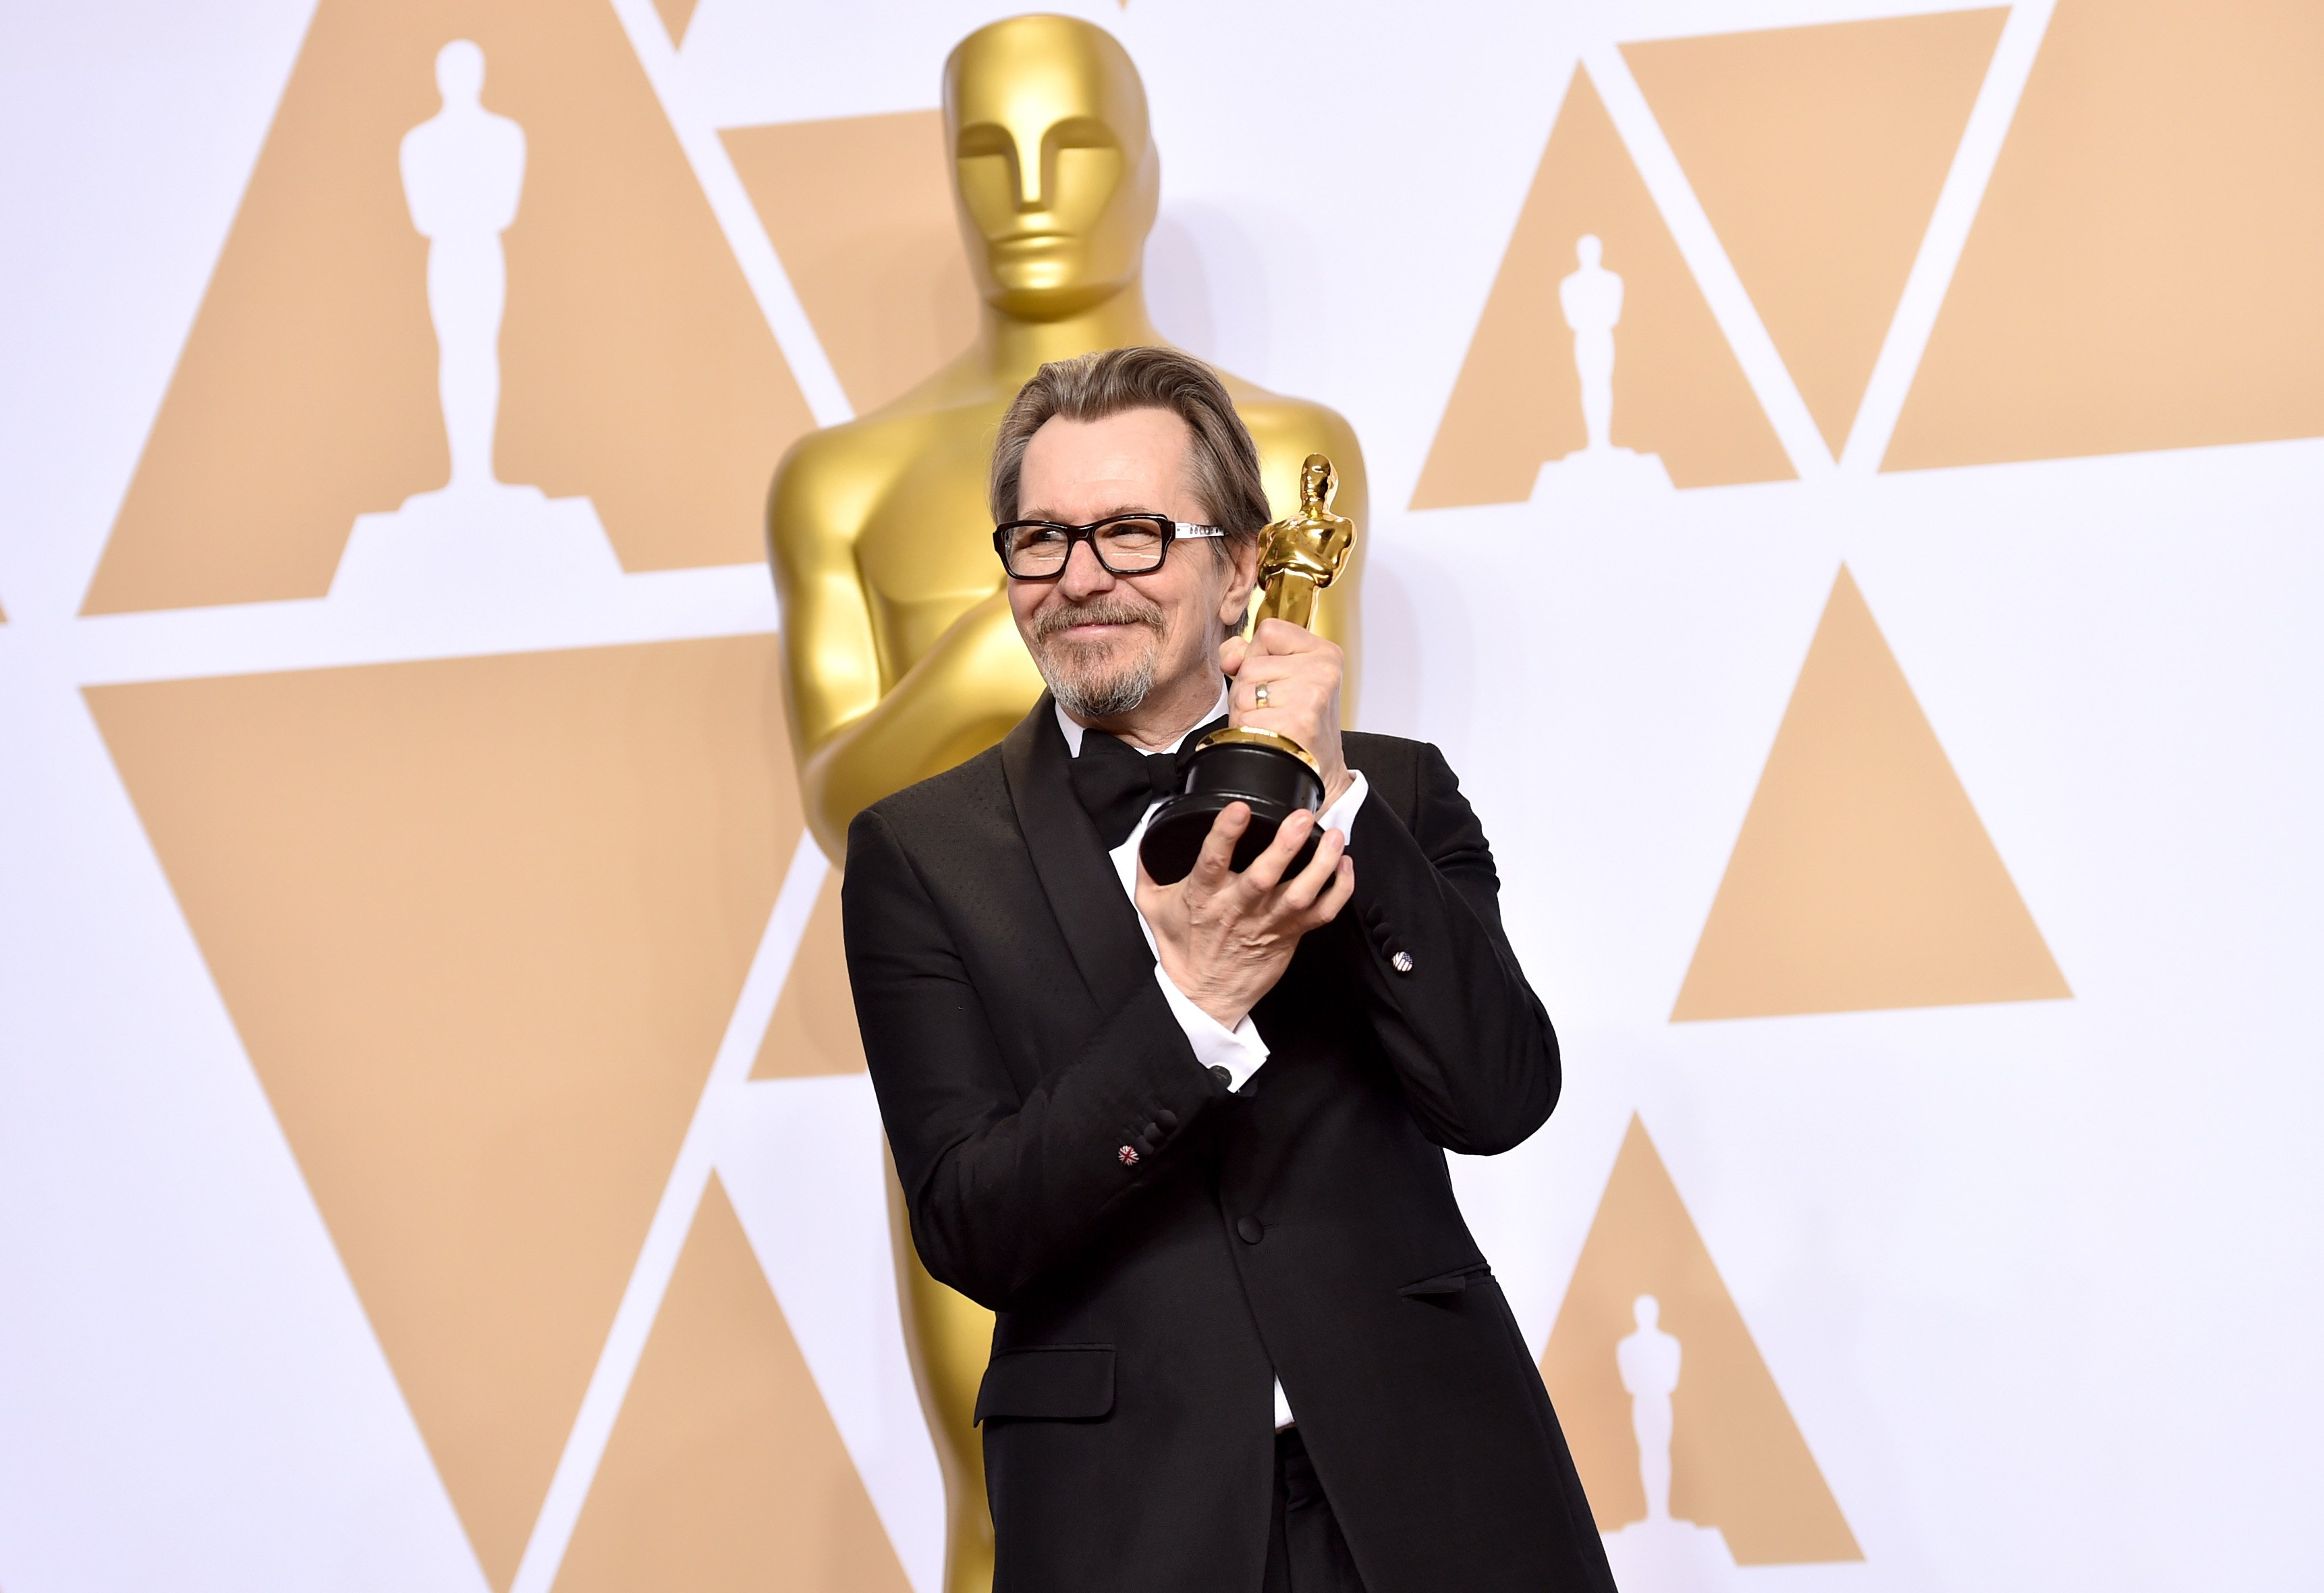 HOLLYWOOD, CA - MARCH 04: Actor Gary Oldman, winner of the Best Actor award for 'Darkest Hour,' poses in the press room during the 90th Annual Academy Awards at Hollywood & Highland Center on March 4, 2018 in Hollywood, California. (Photo by Alberto E. Rodriguez/Getty Images)